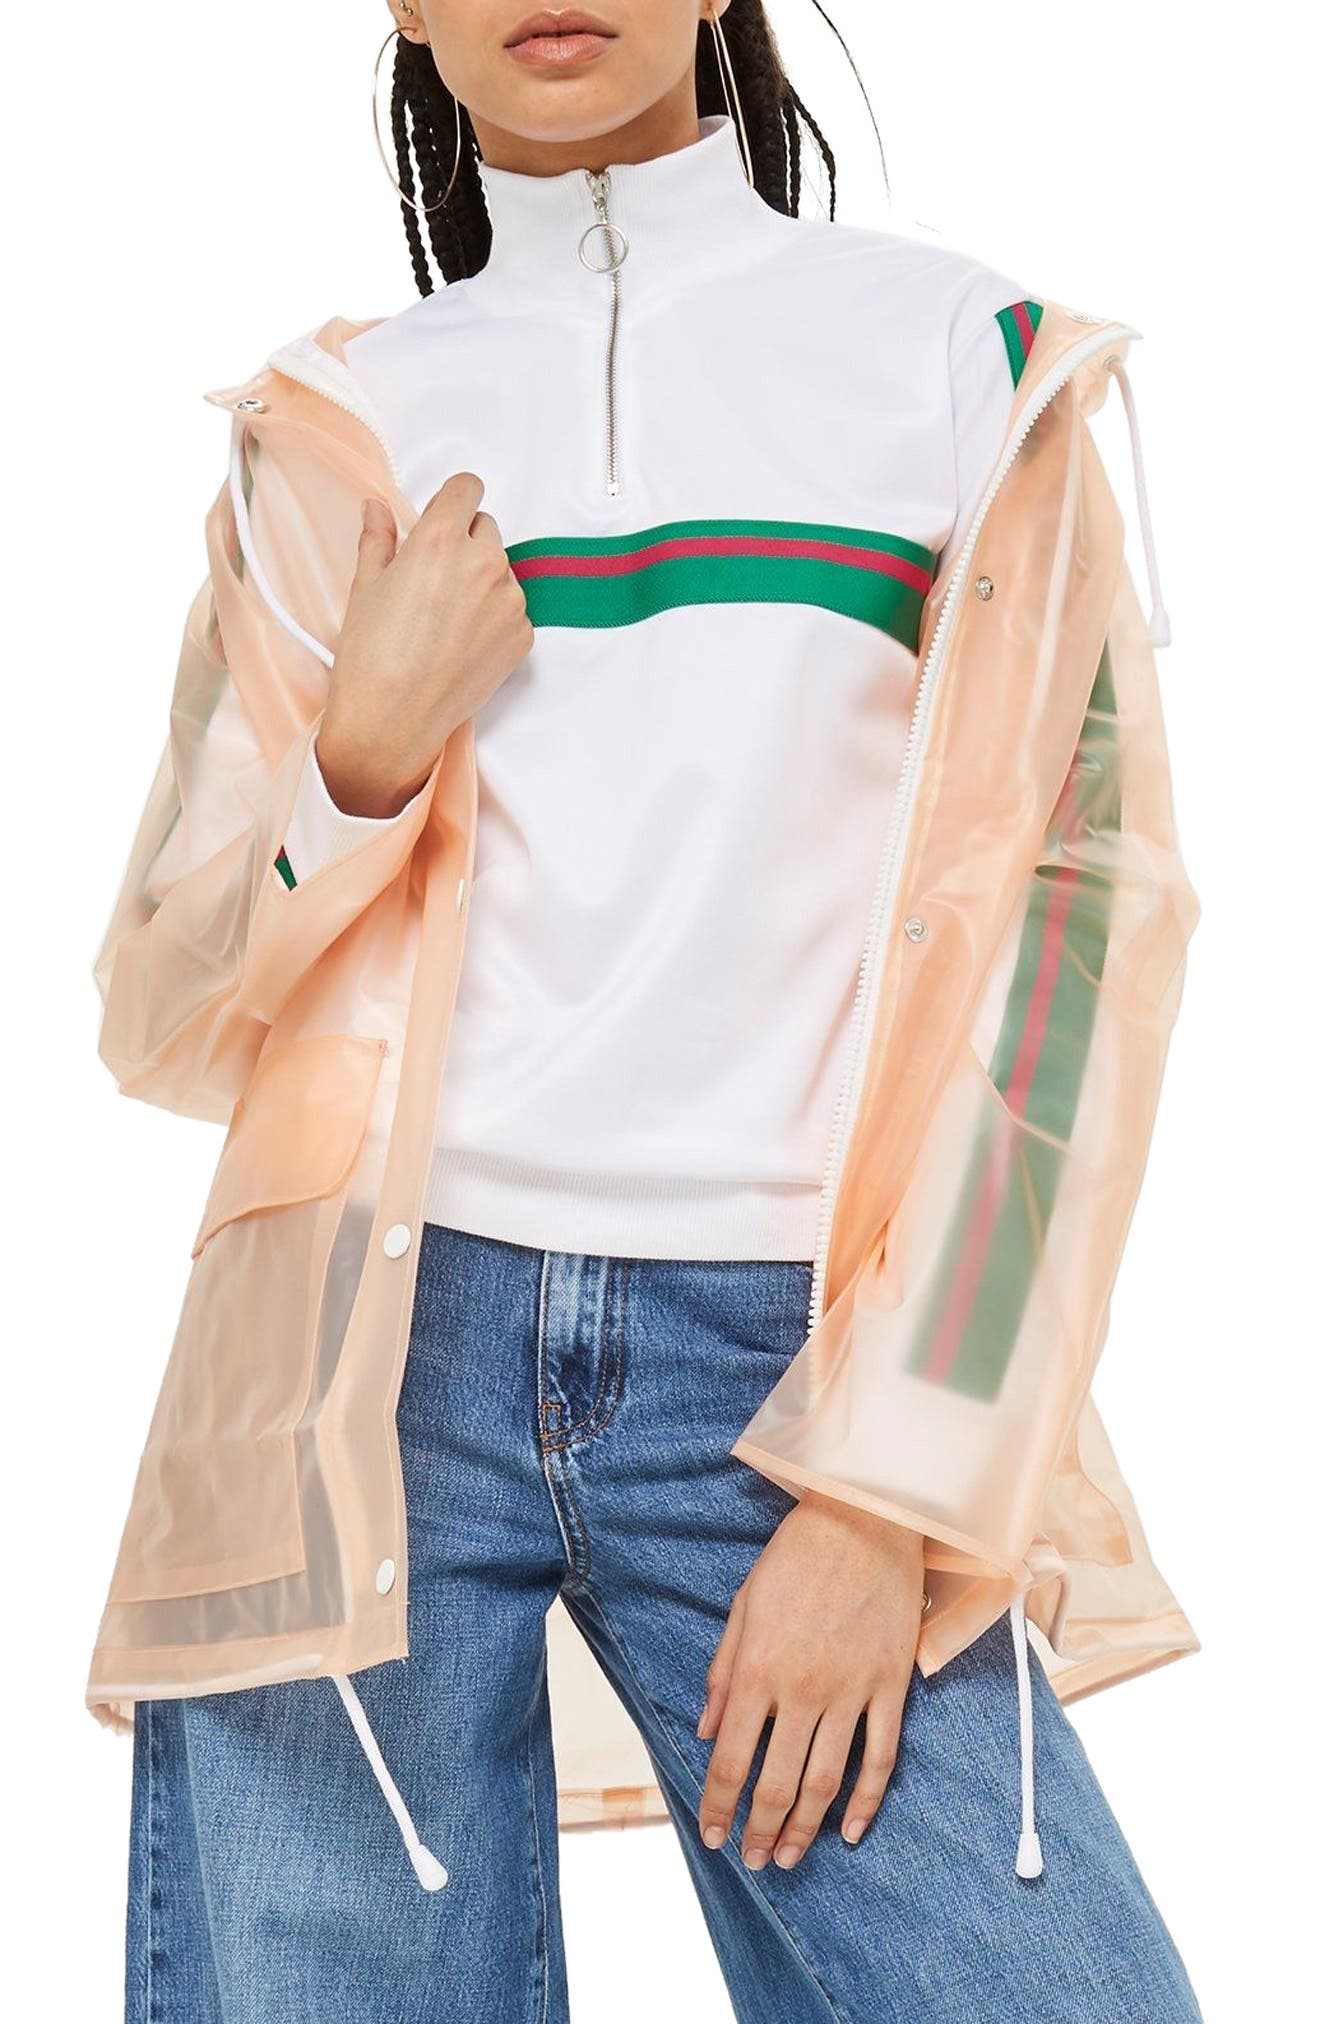 Frosted Marge Mac Rain Jacket,                             Main thumbnail 1, color,                             950